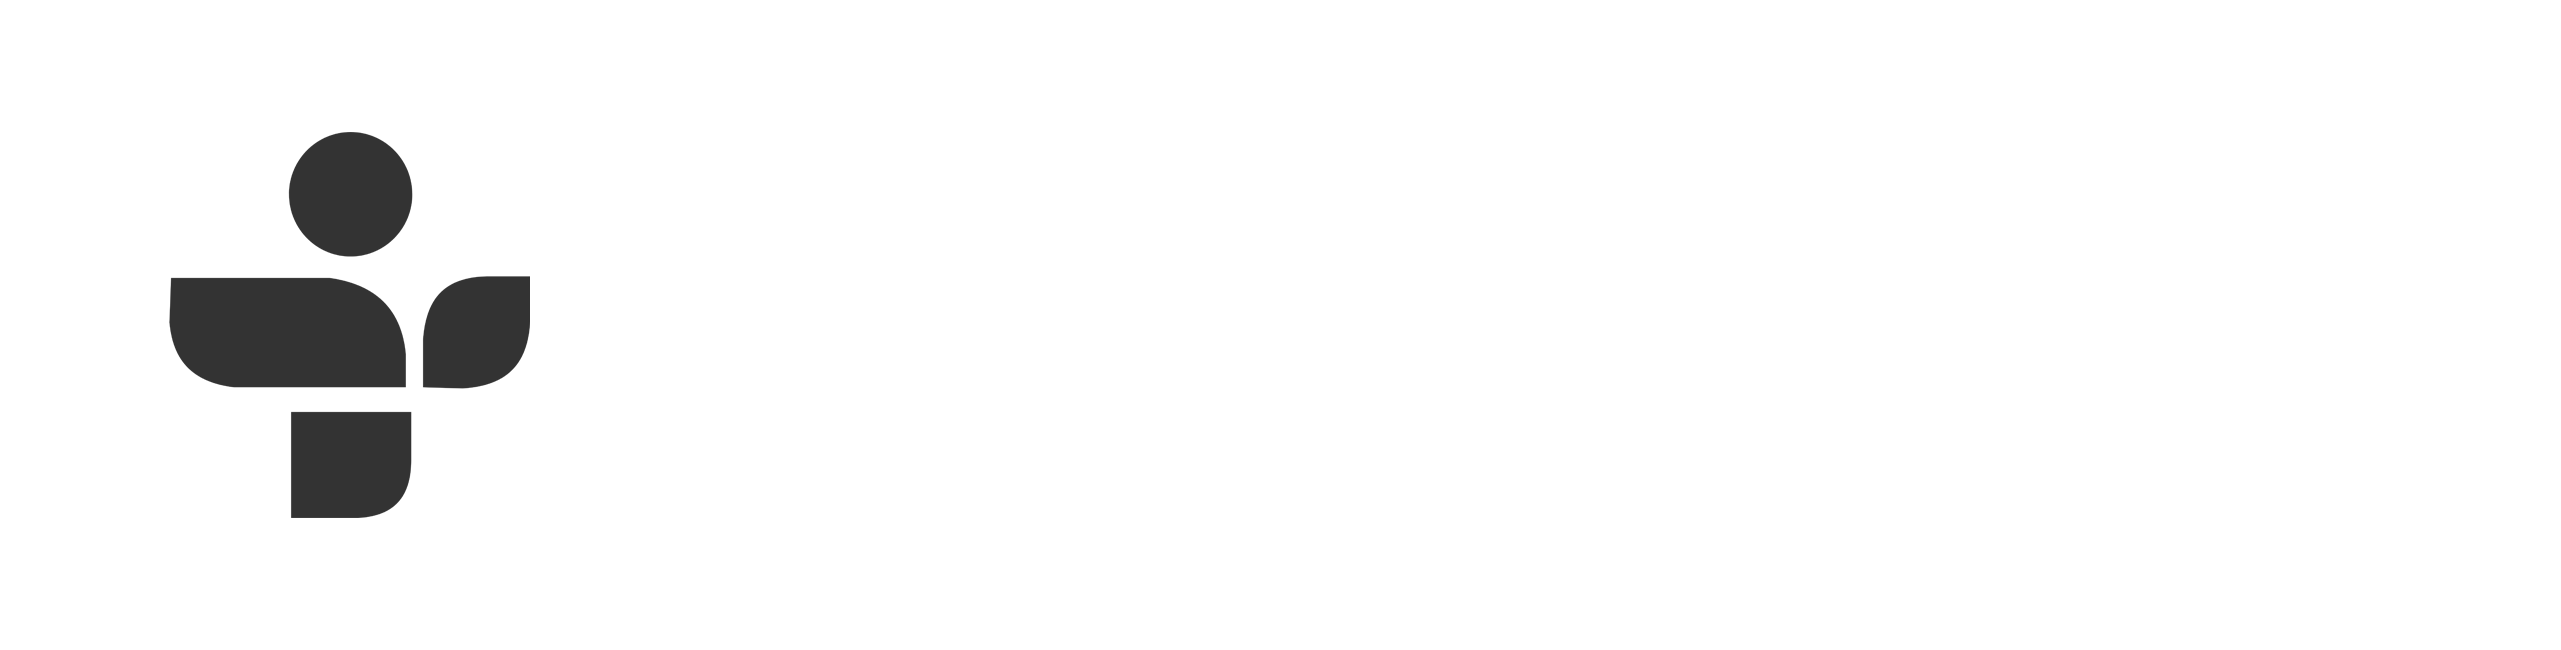 Subscribe TuneIn